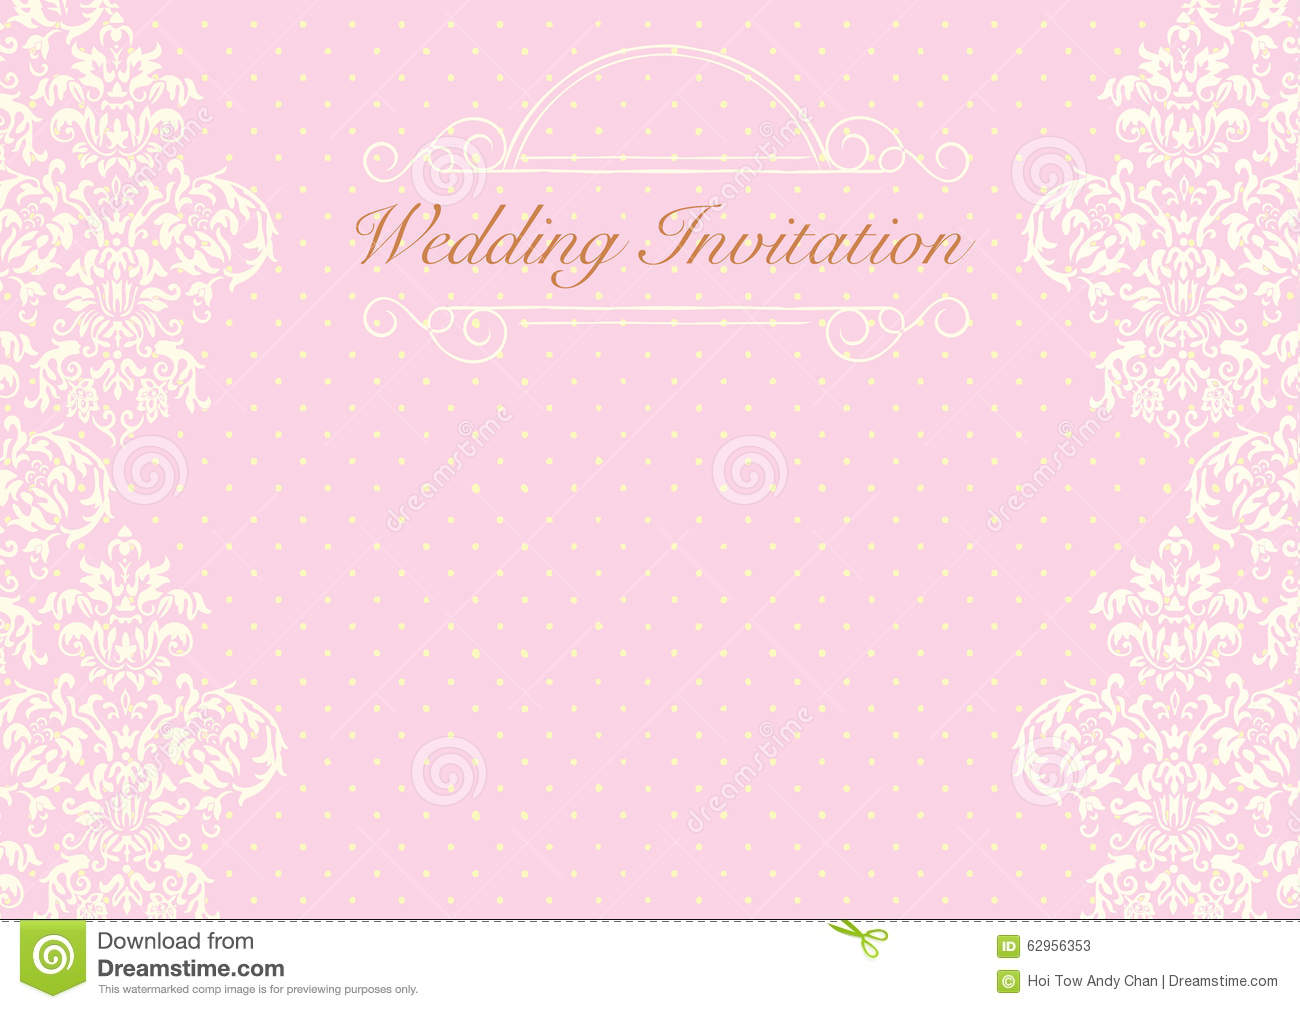 Design For Invitation For Christening - Premium Invitation Template Design | Bliss Escape